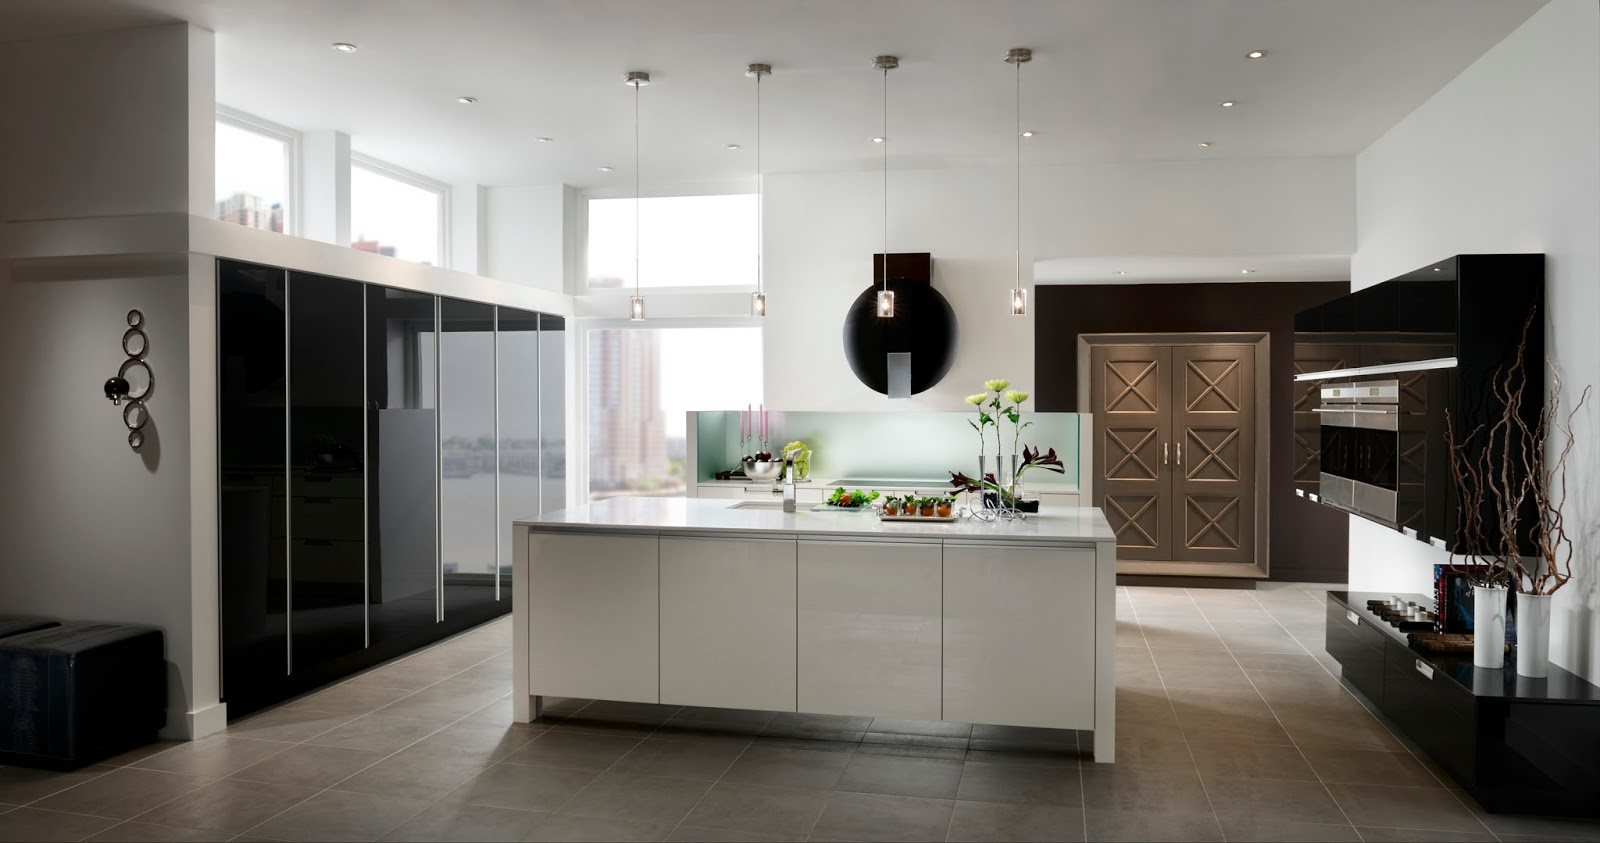 Customized Cabinets Are, Therefore, Highly Desirable, Because Of The  Personalized Touch That They Offer To Your Kitchen. The Best Part Is That  The ...